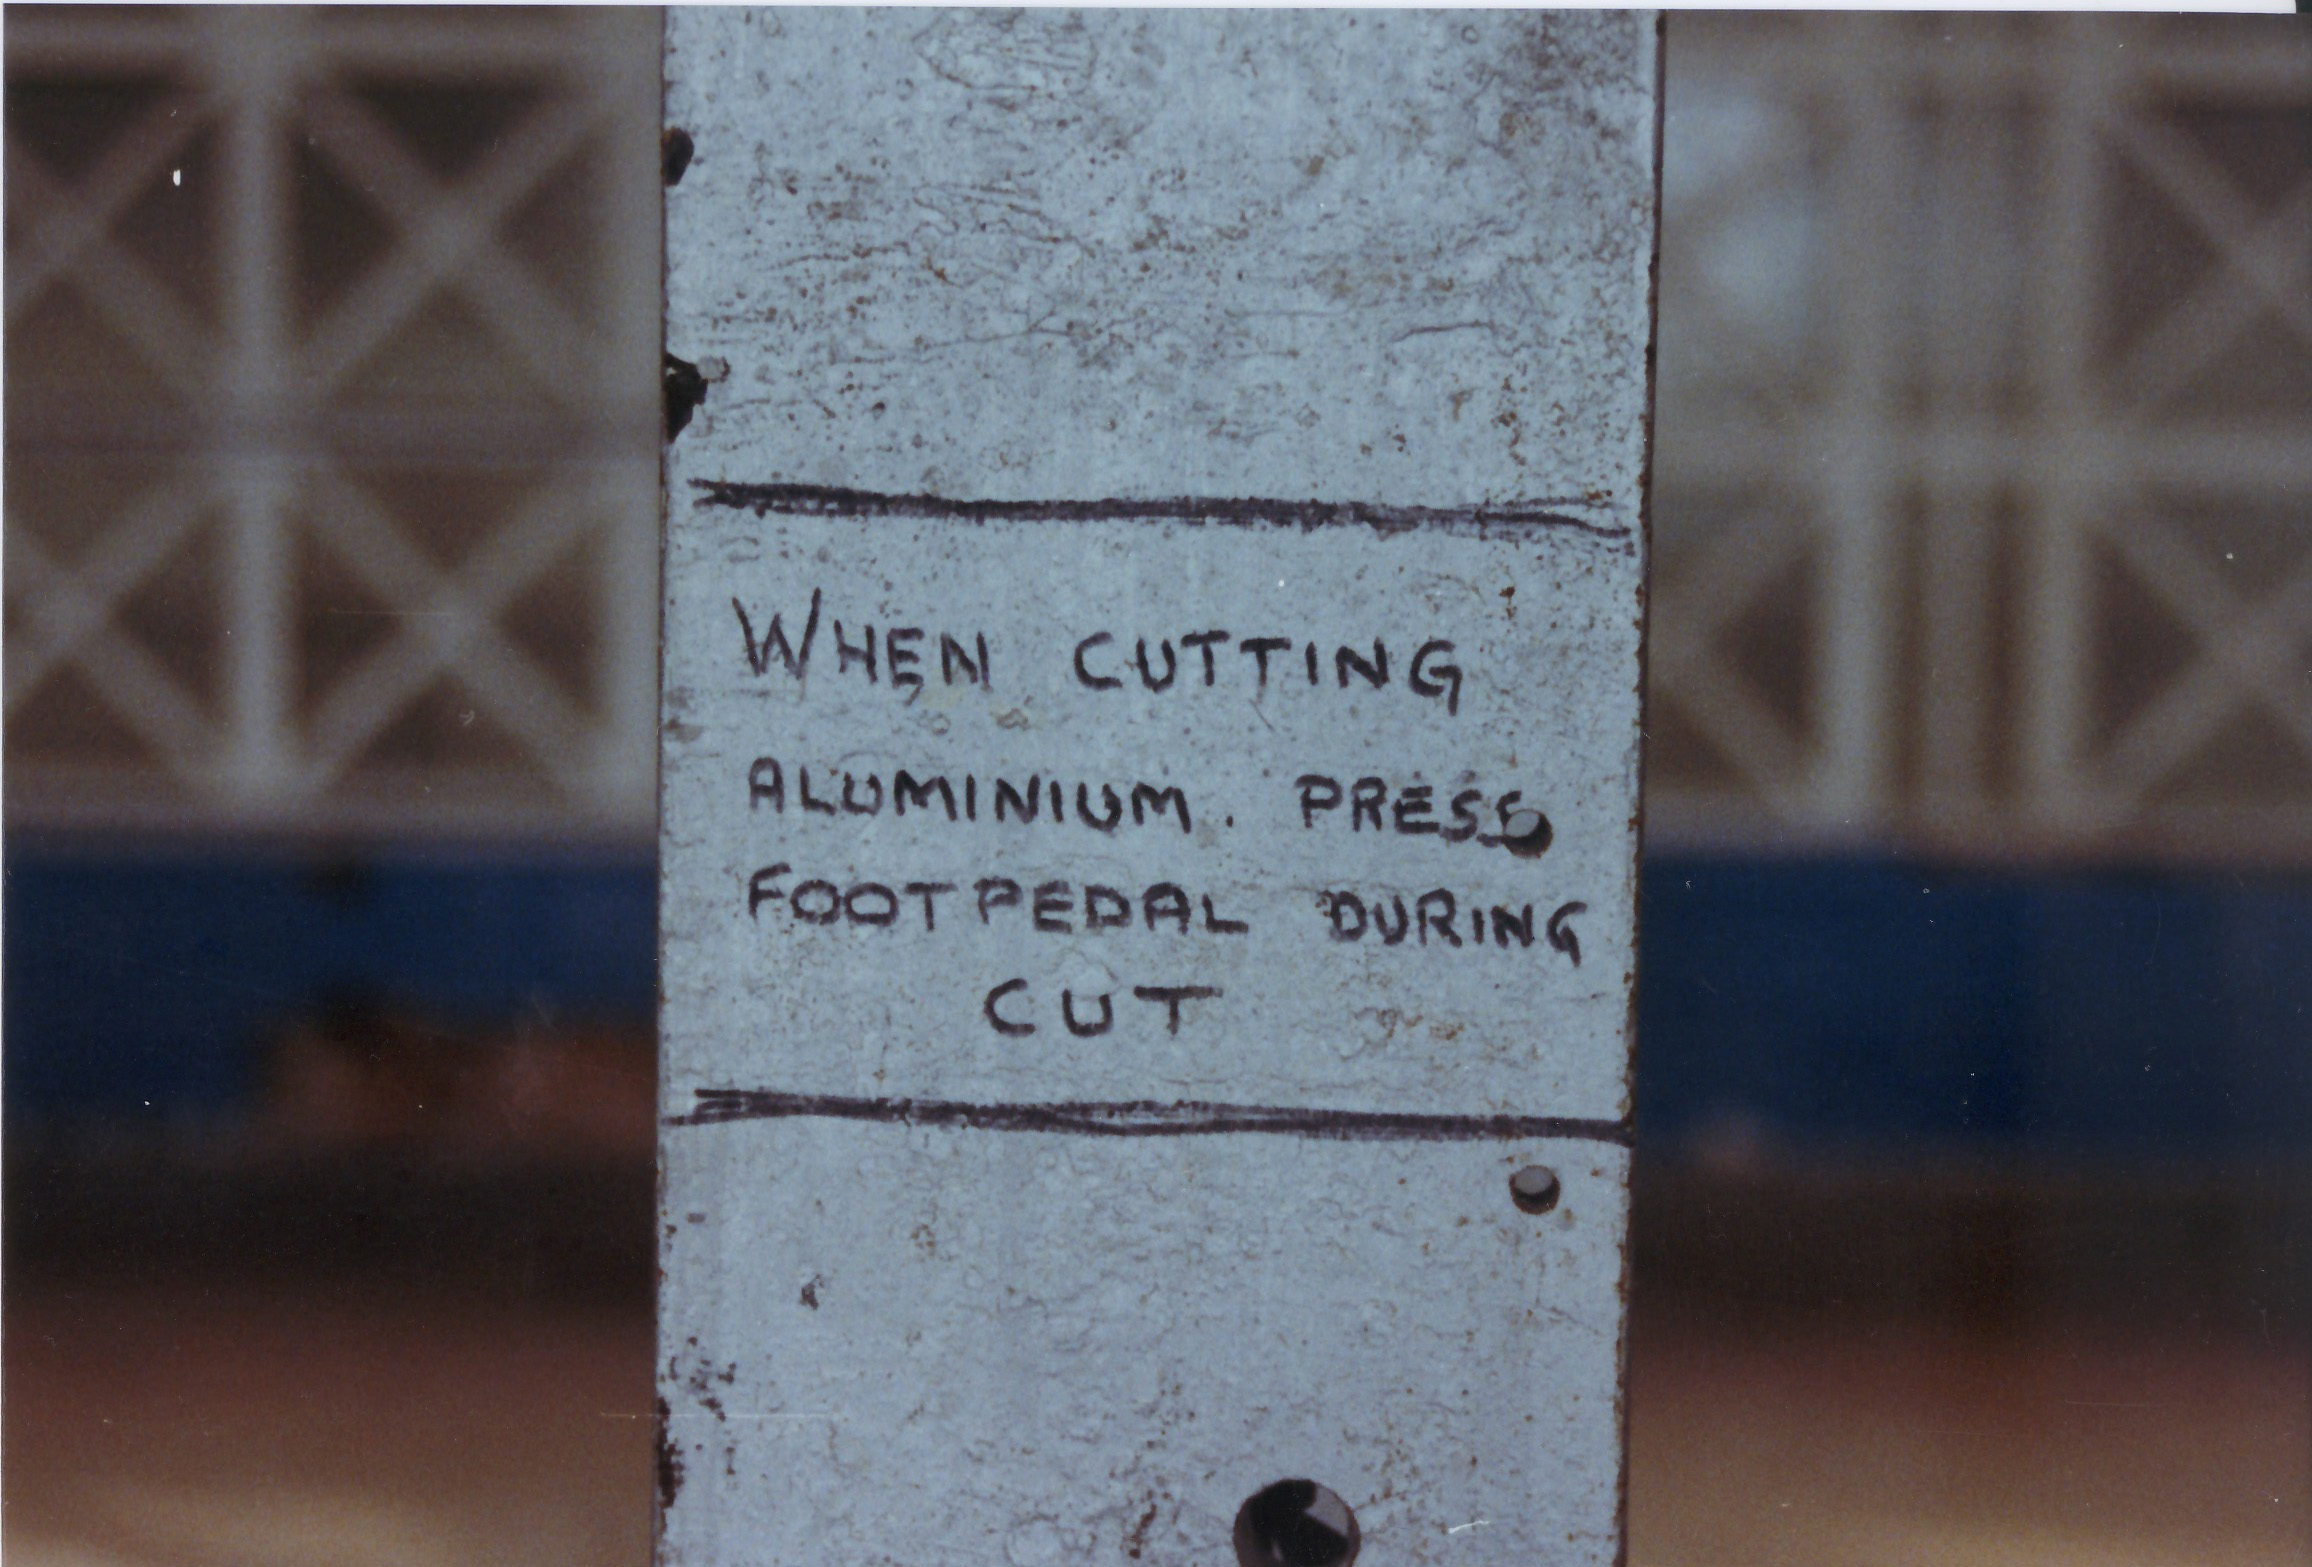 p-064-15-crittalls-notice-about-cutting-aluminium